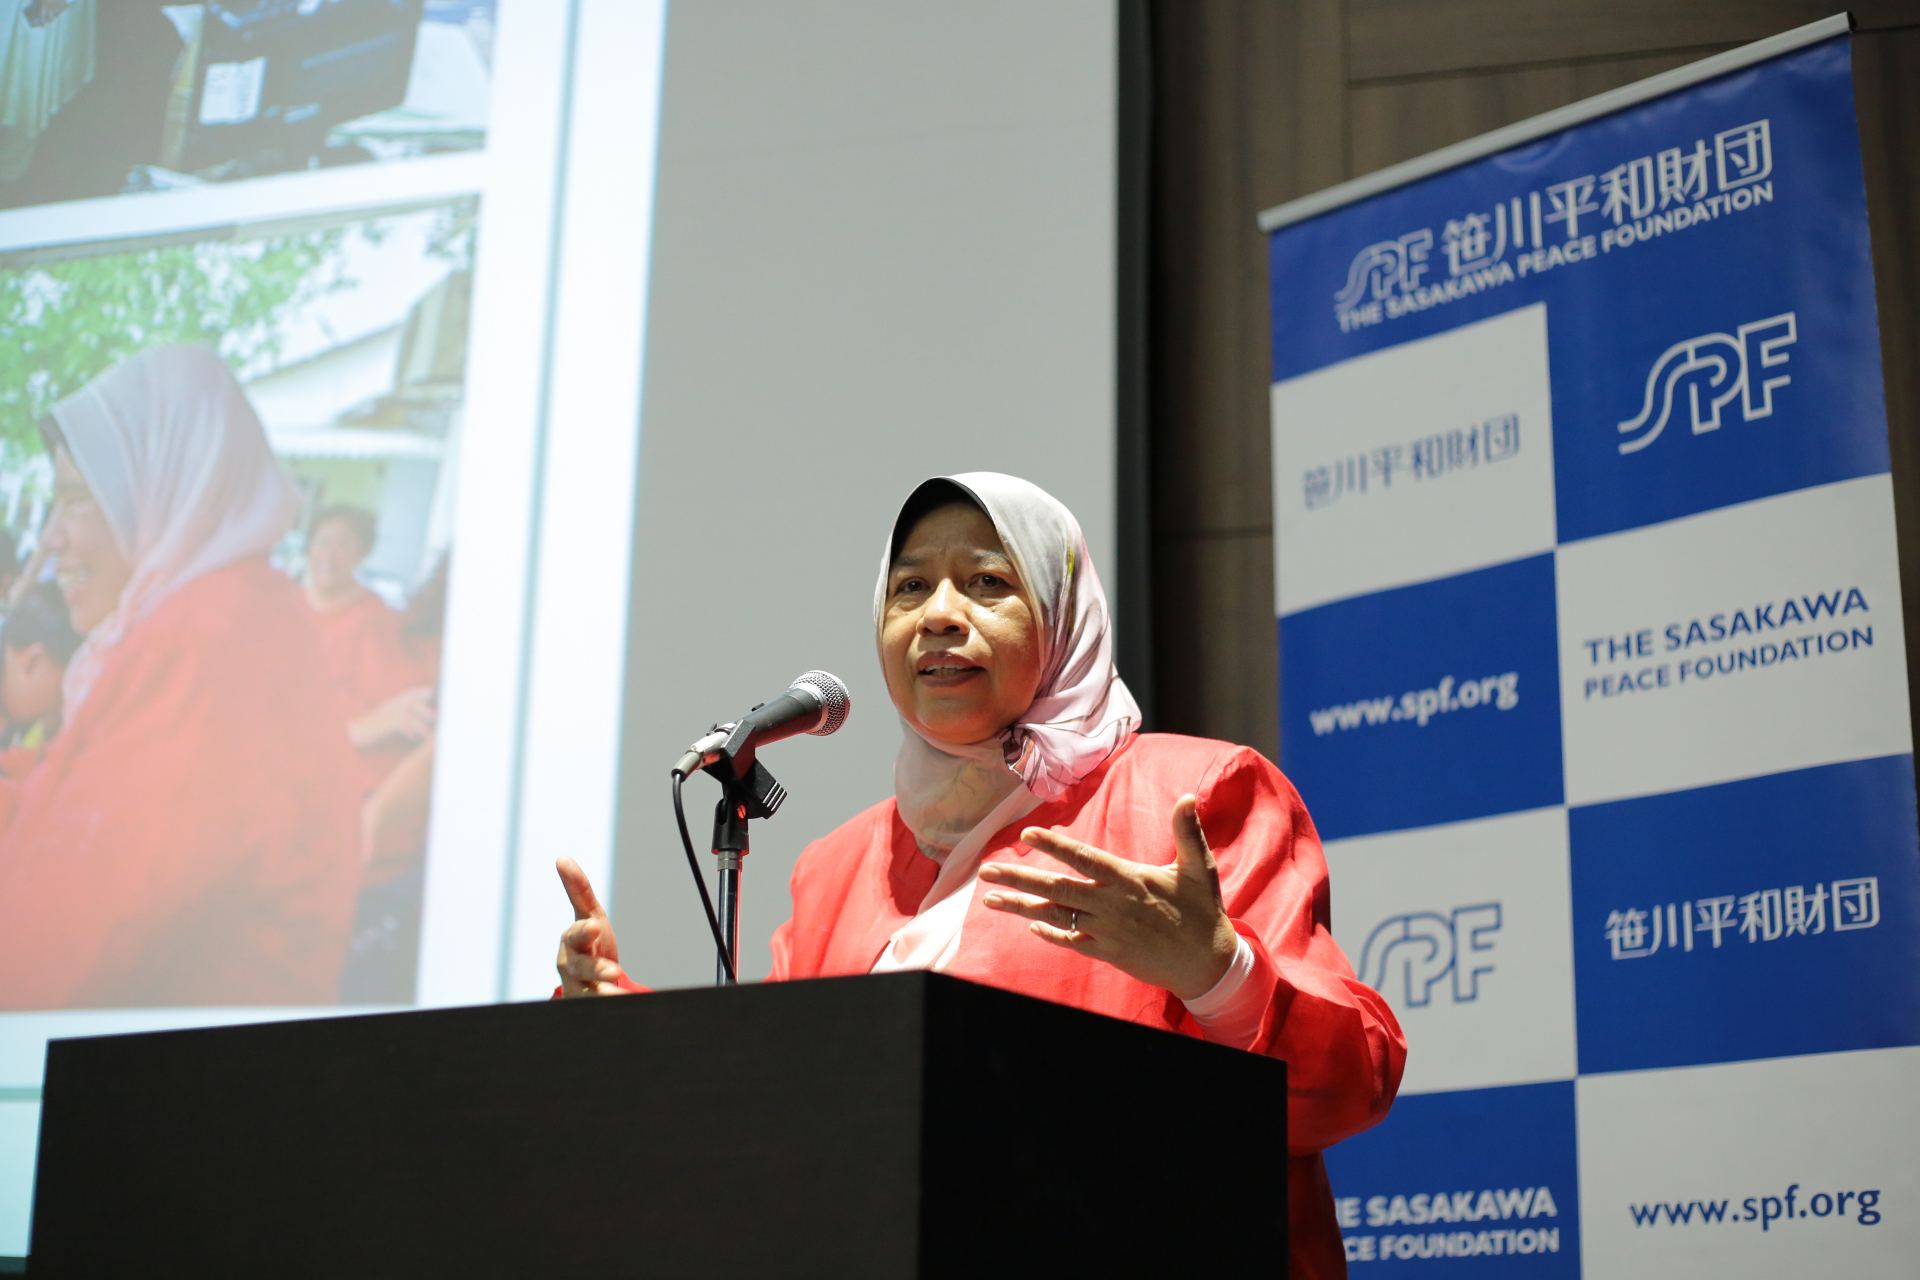 Malaysian Minister of Housing and Local Government Zuraida Kamaruddin discussing her political career